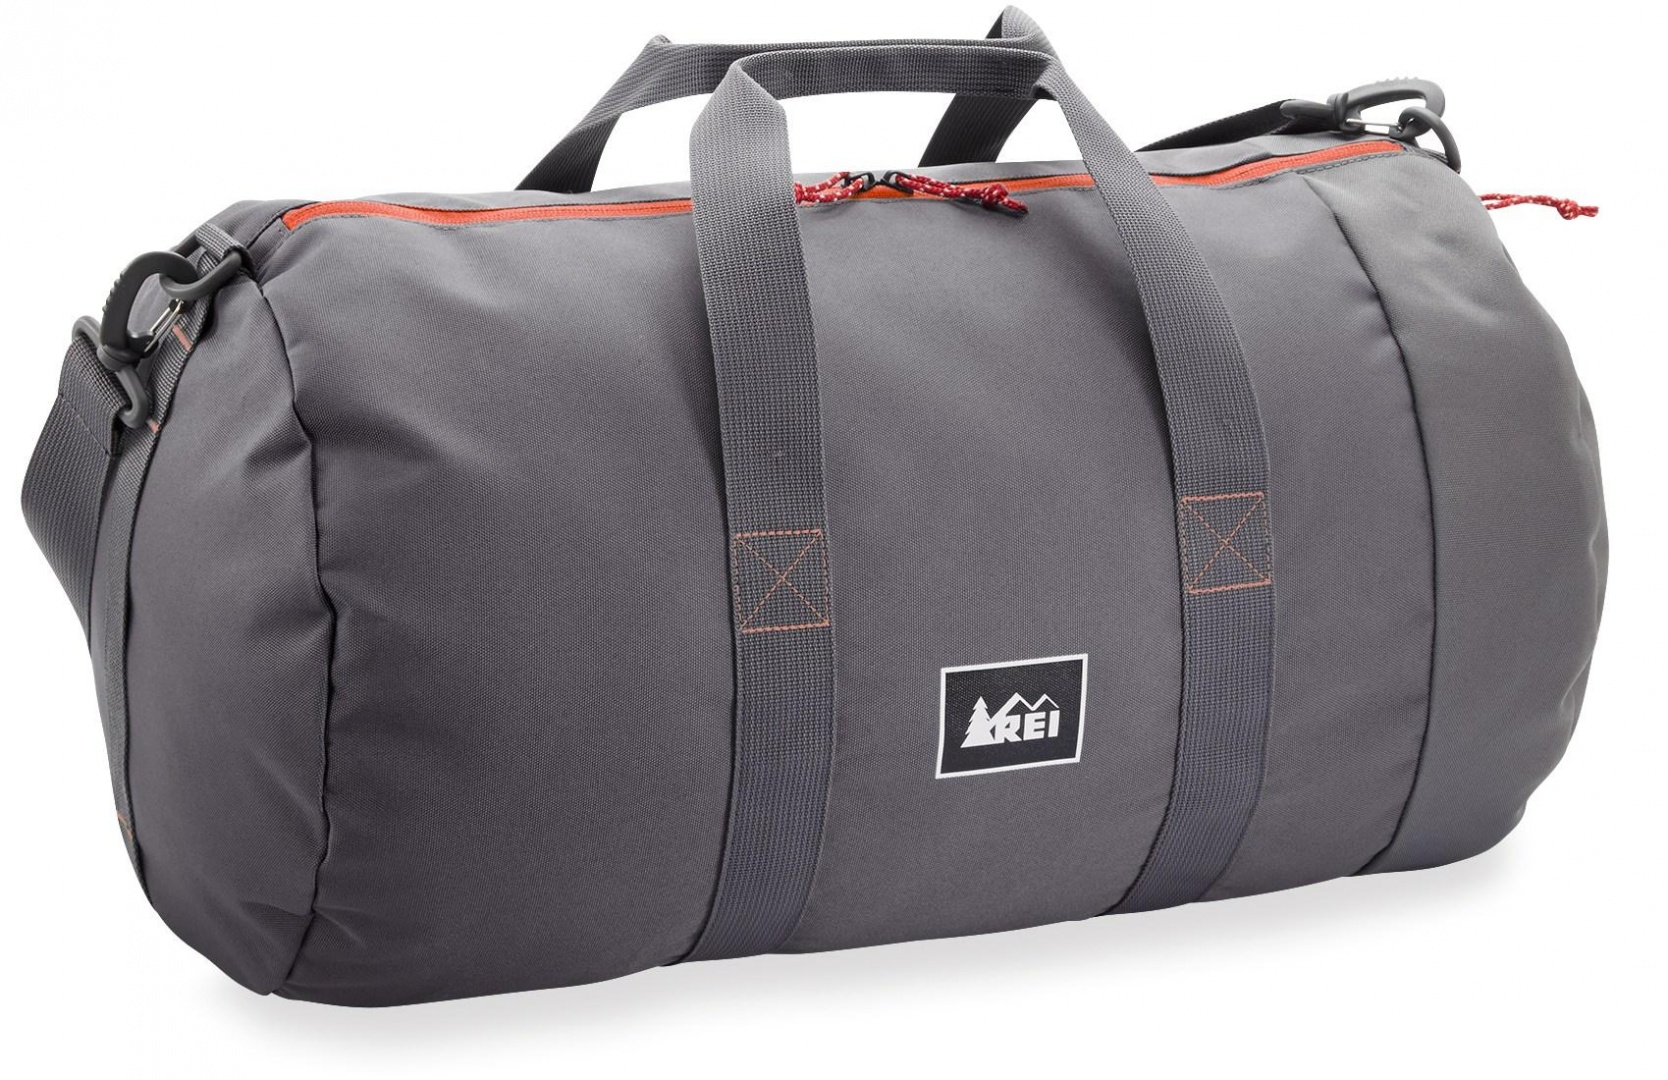 3c4e1af4f7 REI Travel Pack Bags  Buy Online from Fishpond.com.au